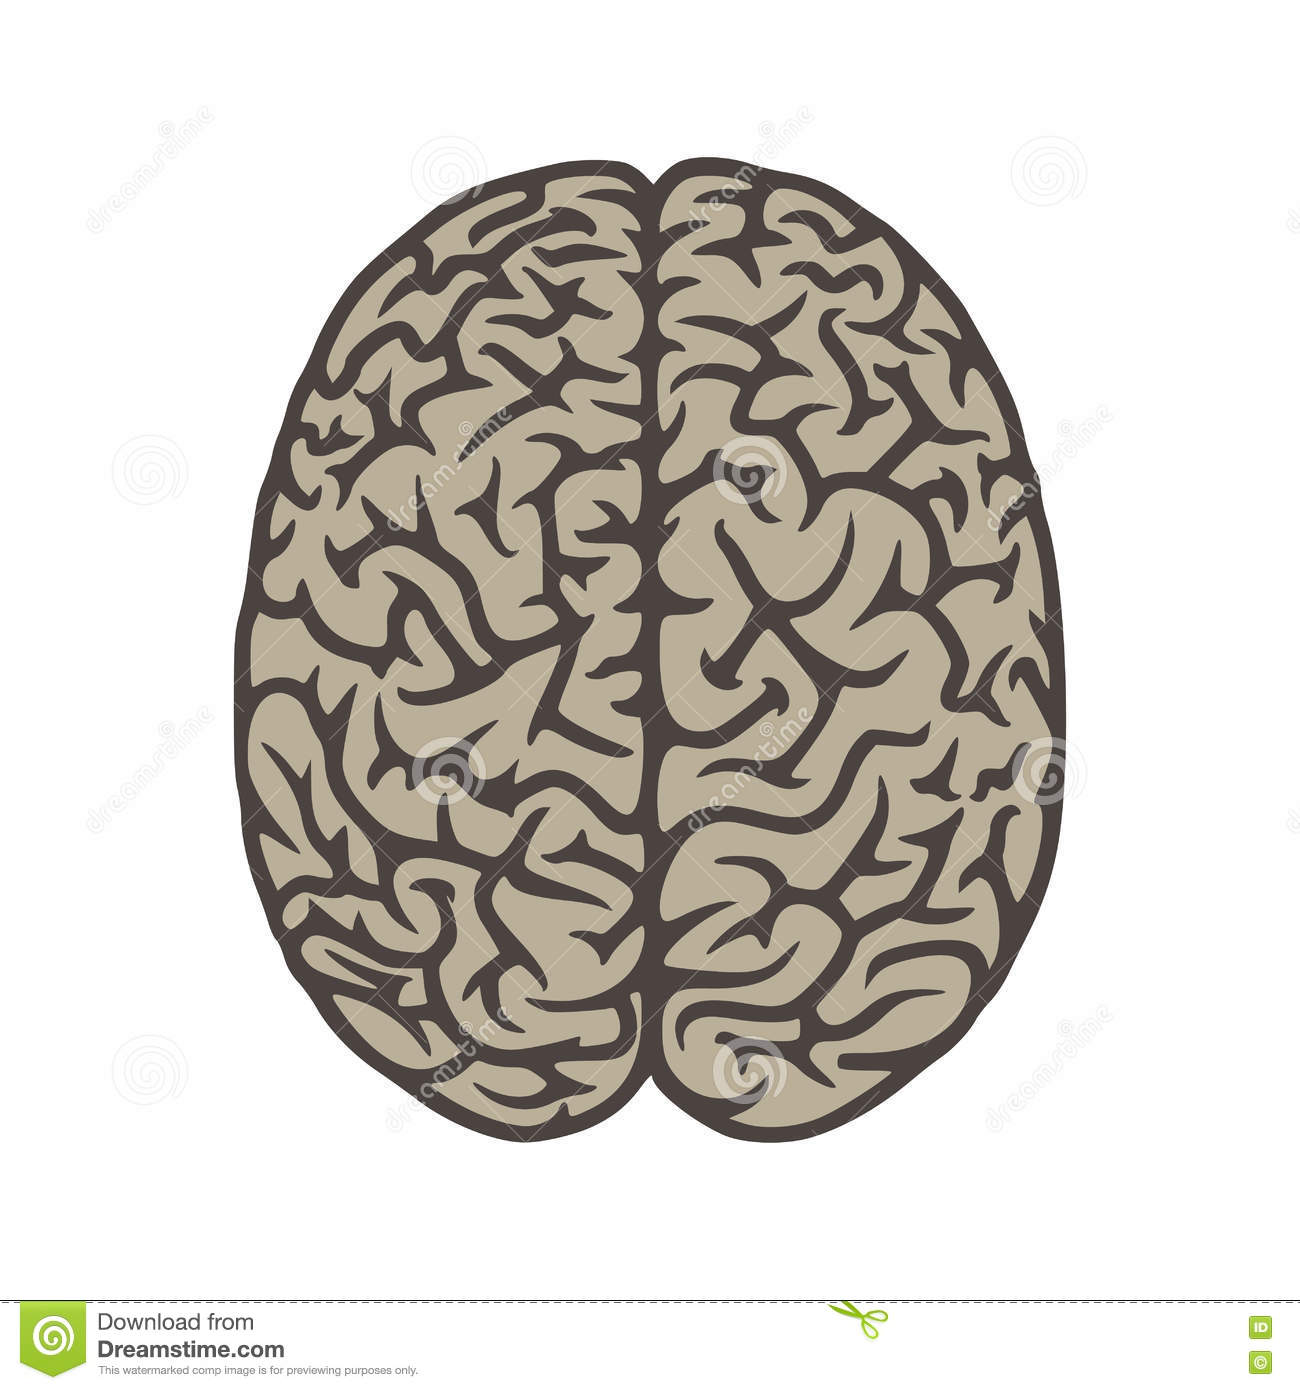 Brain Top View Illustration Object Stock Vector ...